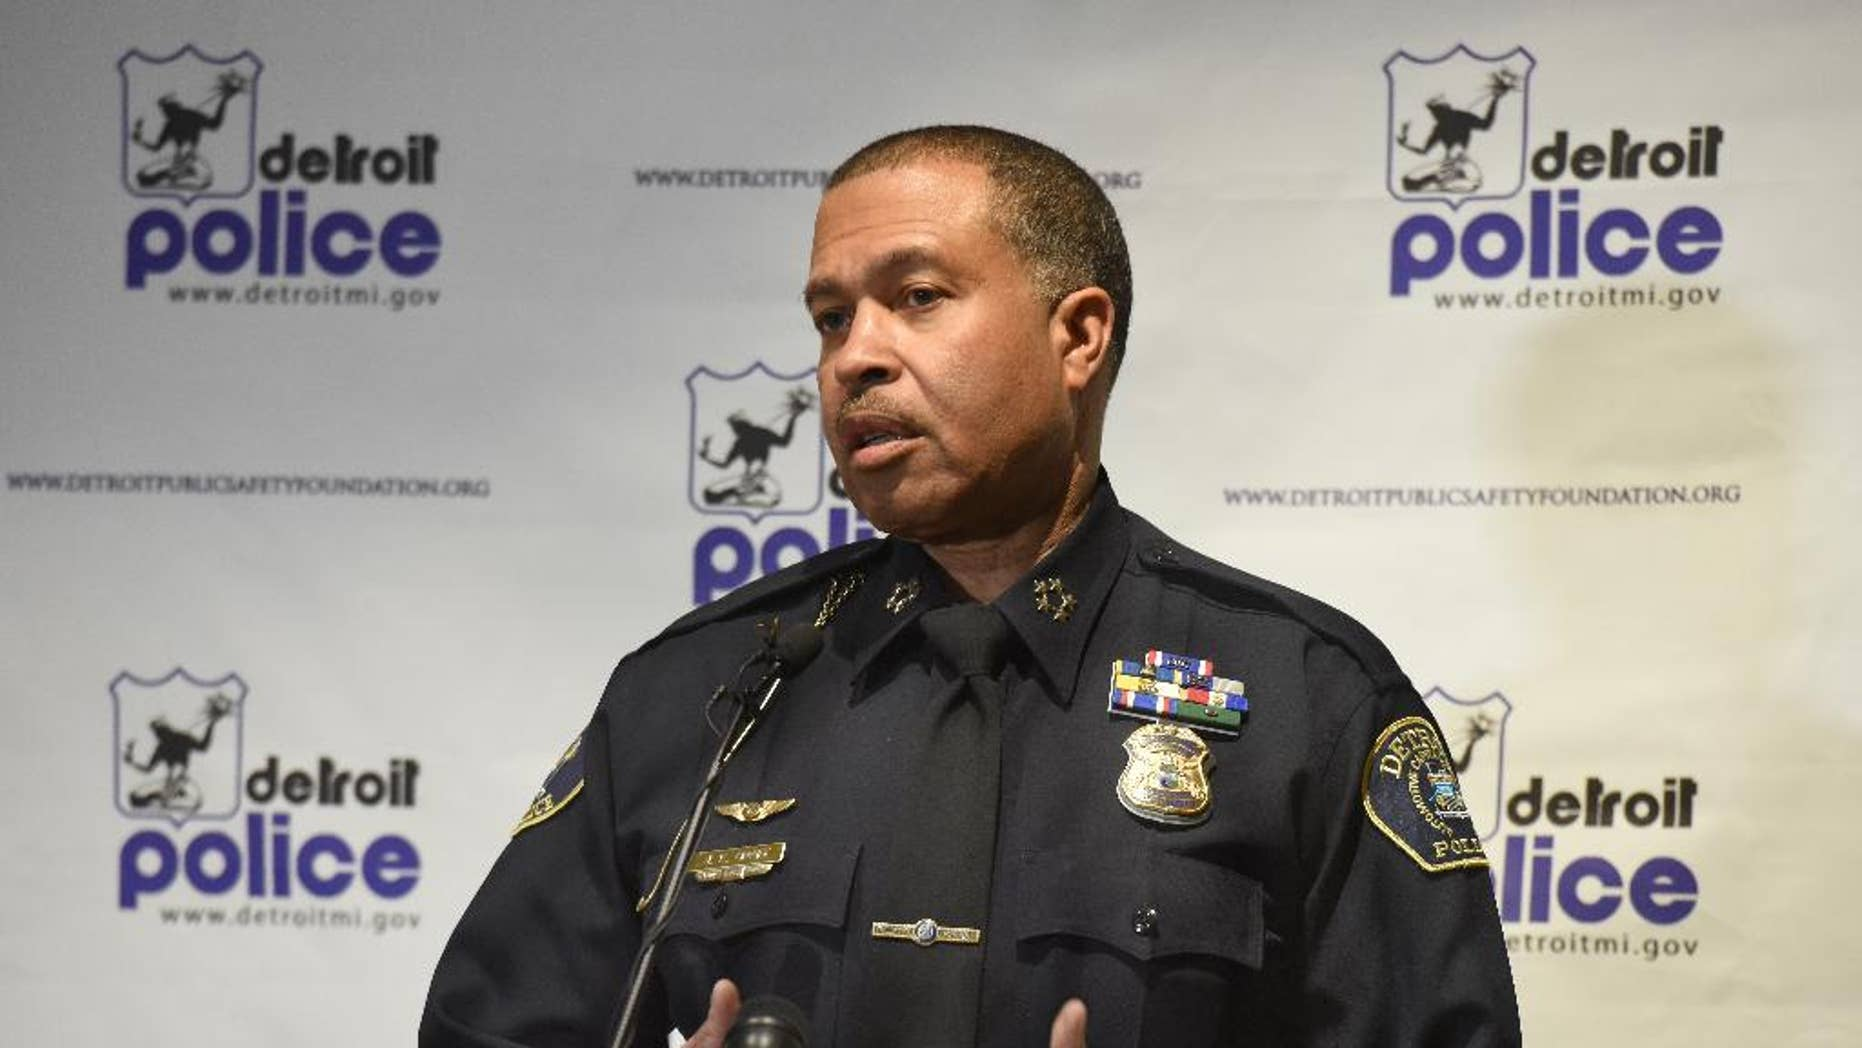 "Detroit Police Chief James Craig talks at a press conference at Detroit Police Headquarters in Detroit, Mich., Thursday, April 9, 2015, on the two suspended members of the Detroit Police Department, Lt. David ""Hater"" Hansberry and Officer Bryan ""Bullet"" Watson, who were indicted Wednesday and accused of robbing and extorting people.  The allegations undermine the public's trust, Craig said, in a city that is emerging from a years-long public corruption investigation.  (AP Photo/Detroit News, Daniel Mears)"